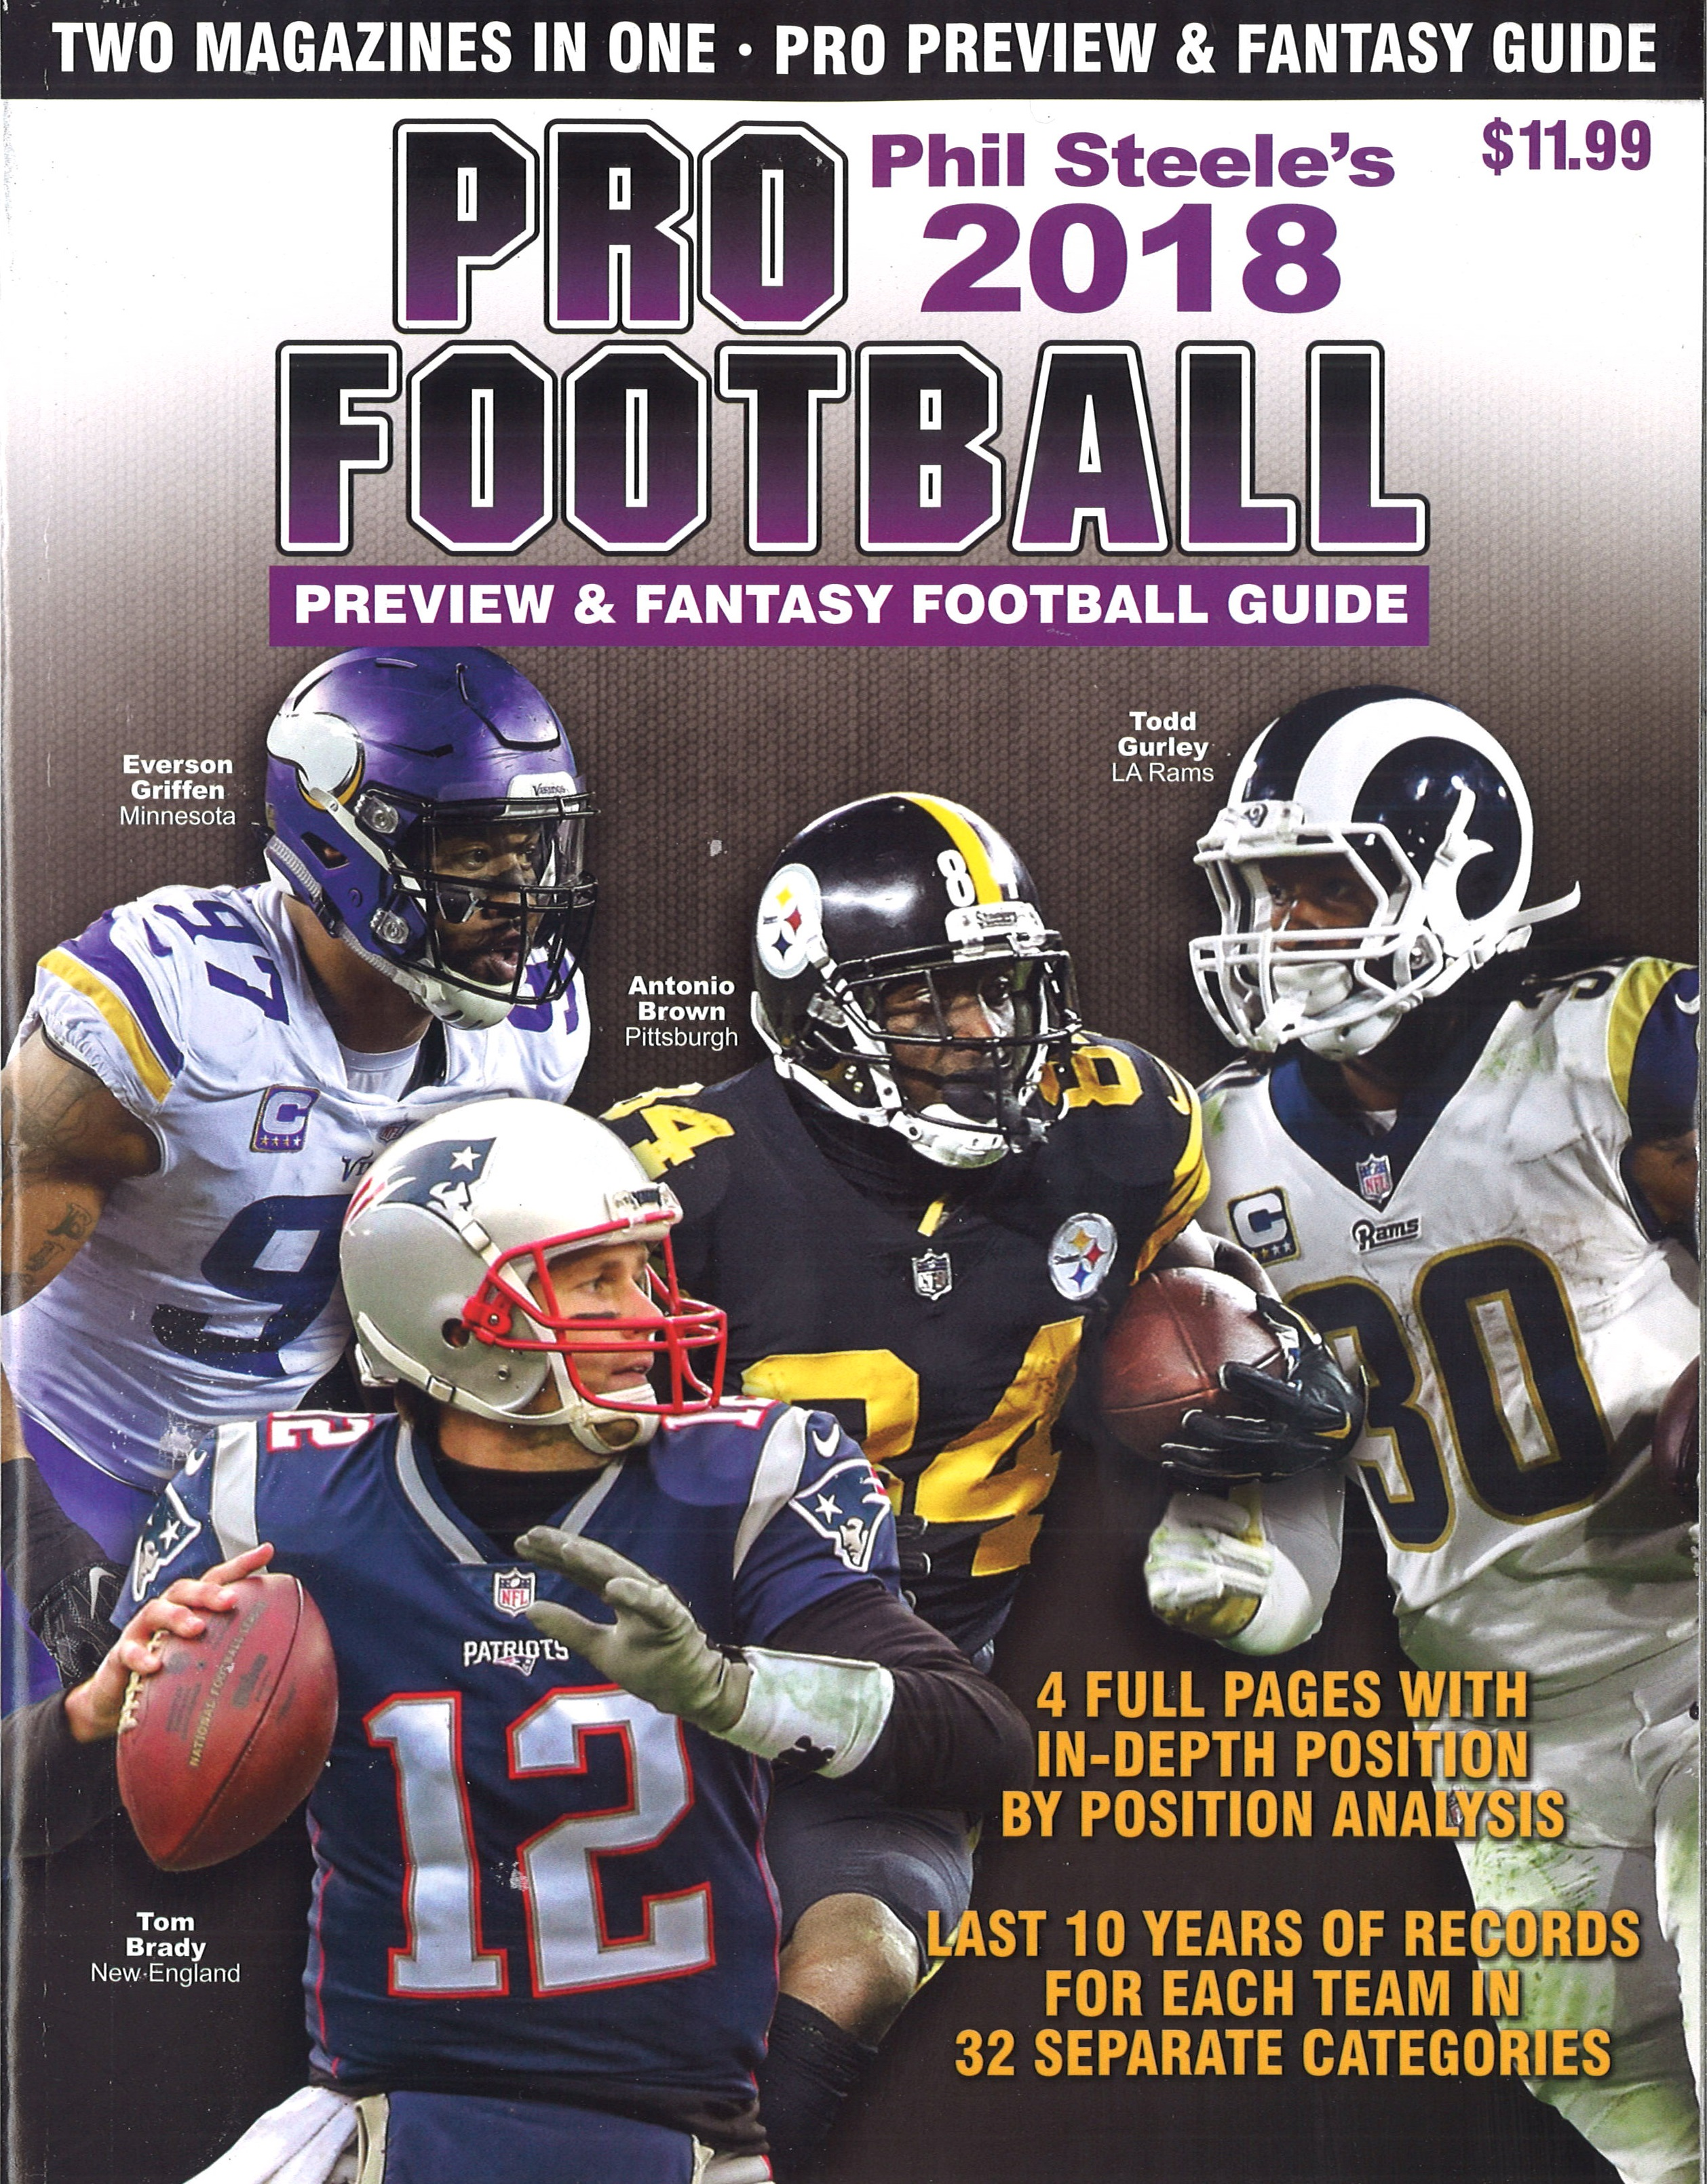 PHIL STEELE'S 2018 PRO FOOTBALL PREVIEW & FANTASY FOOTBALL